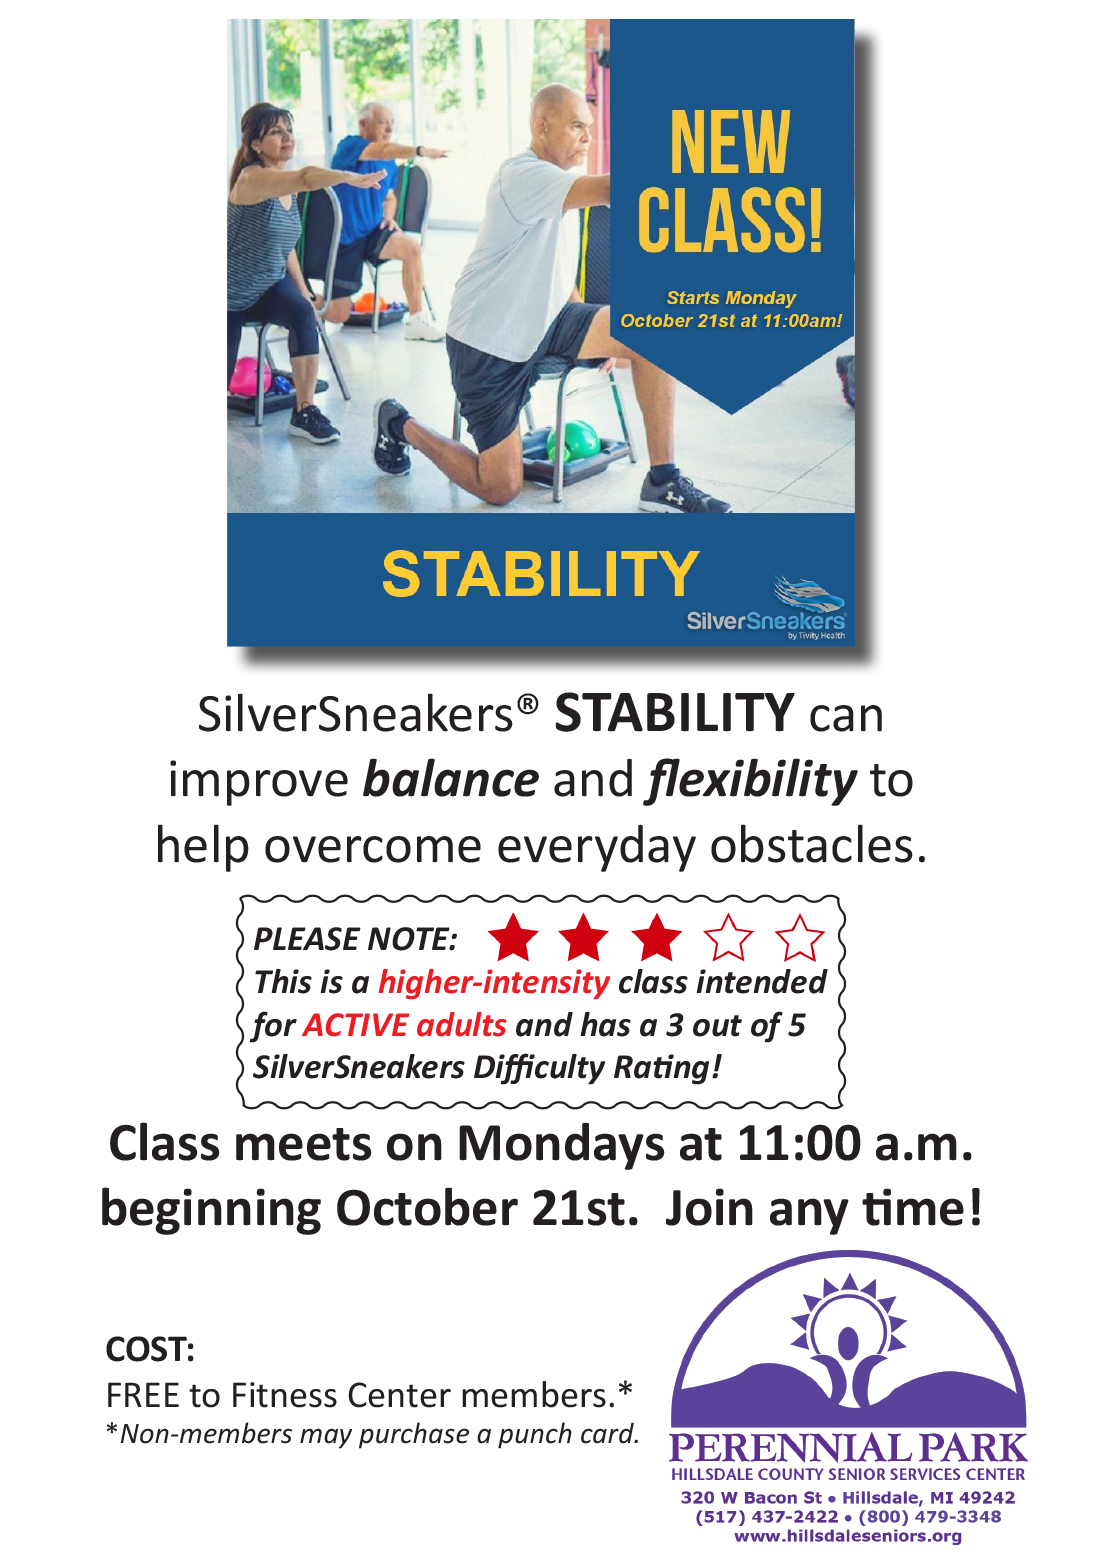 STABILITY flyer image